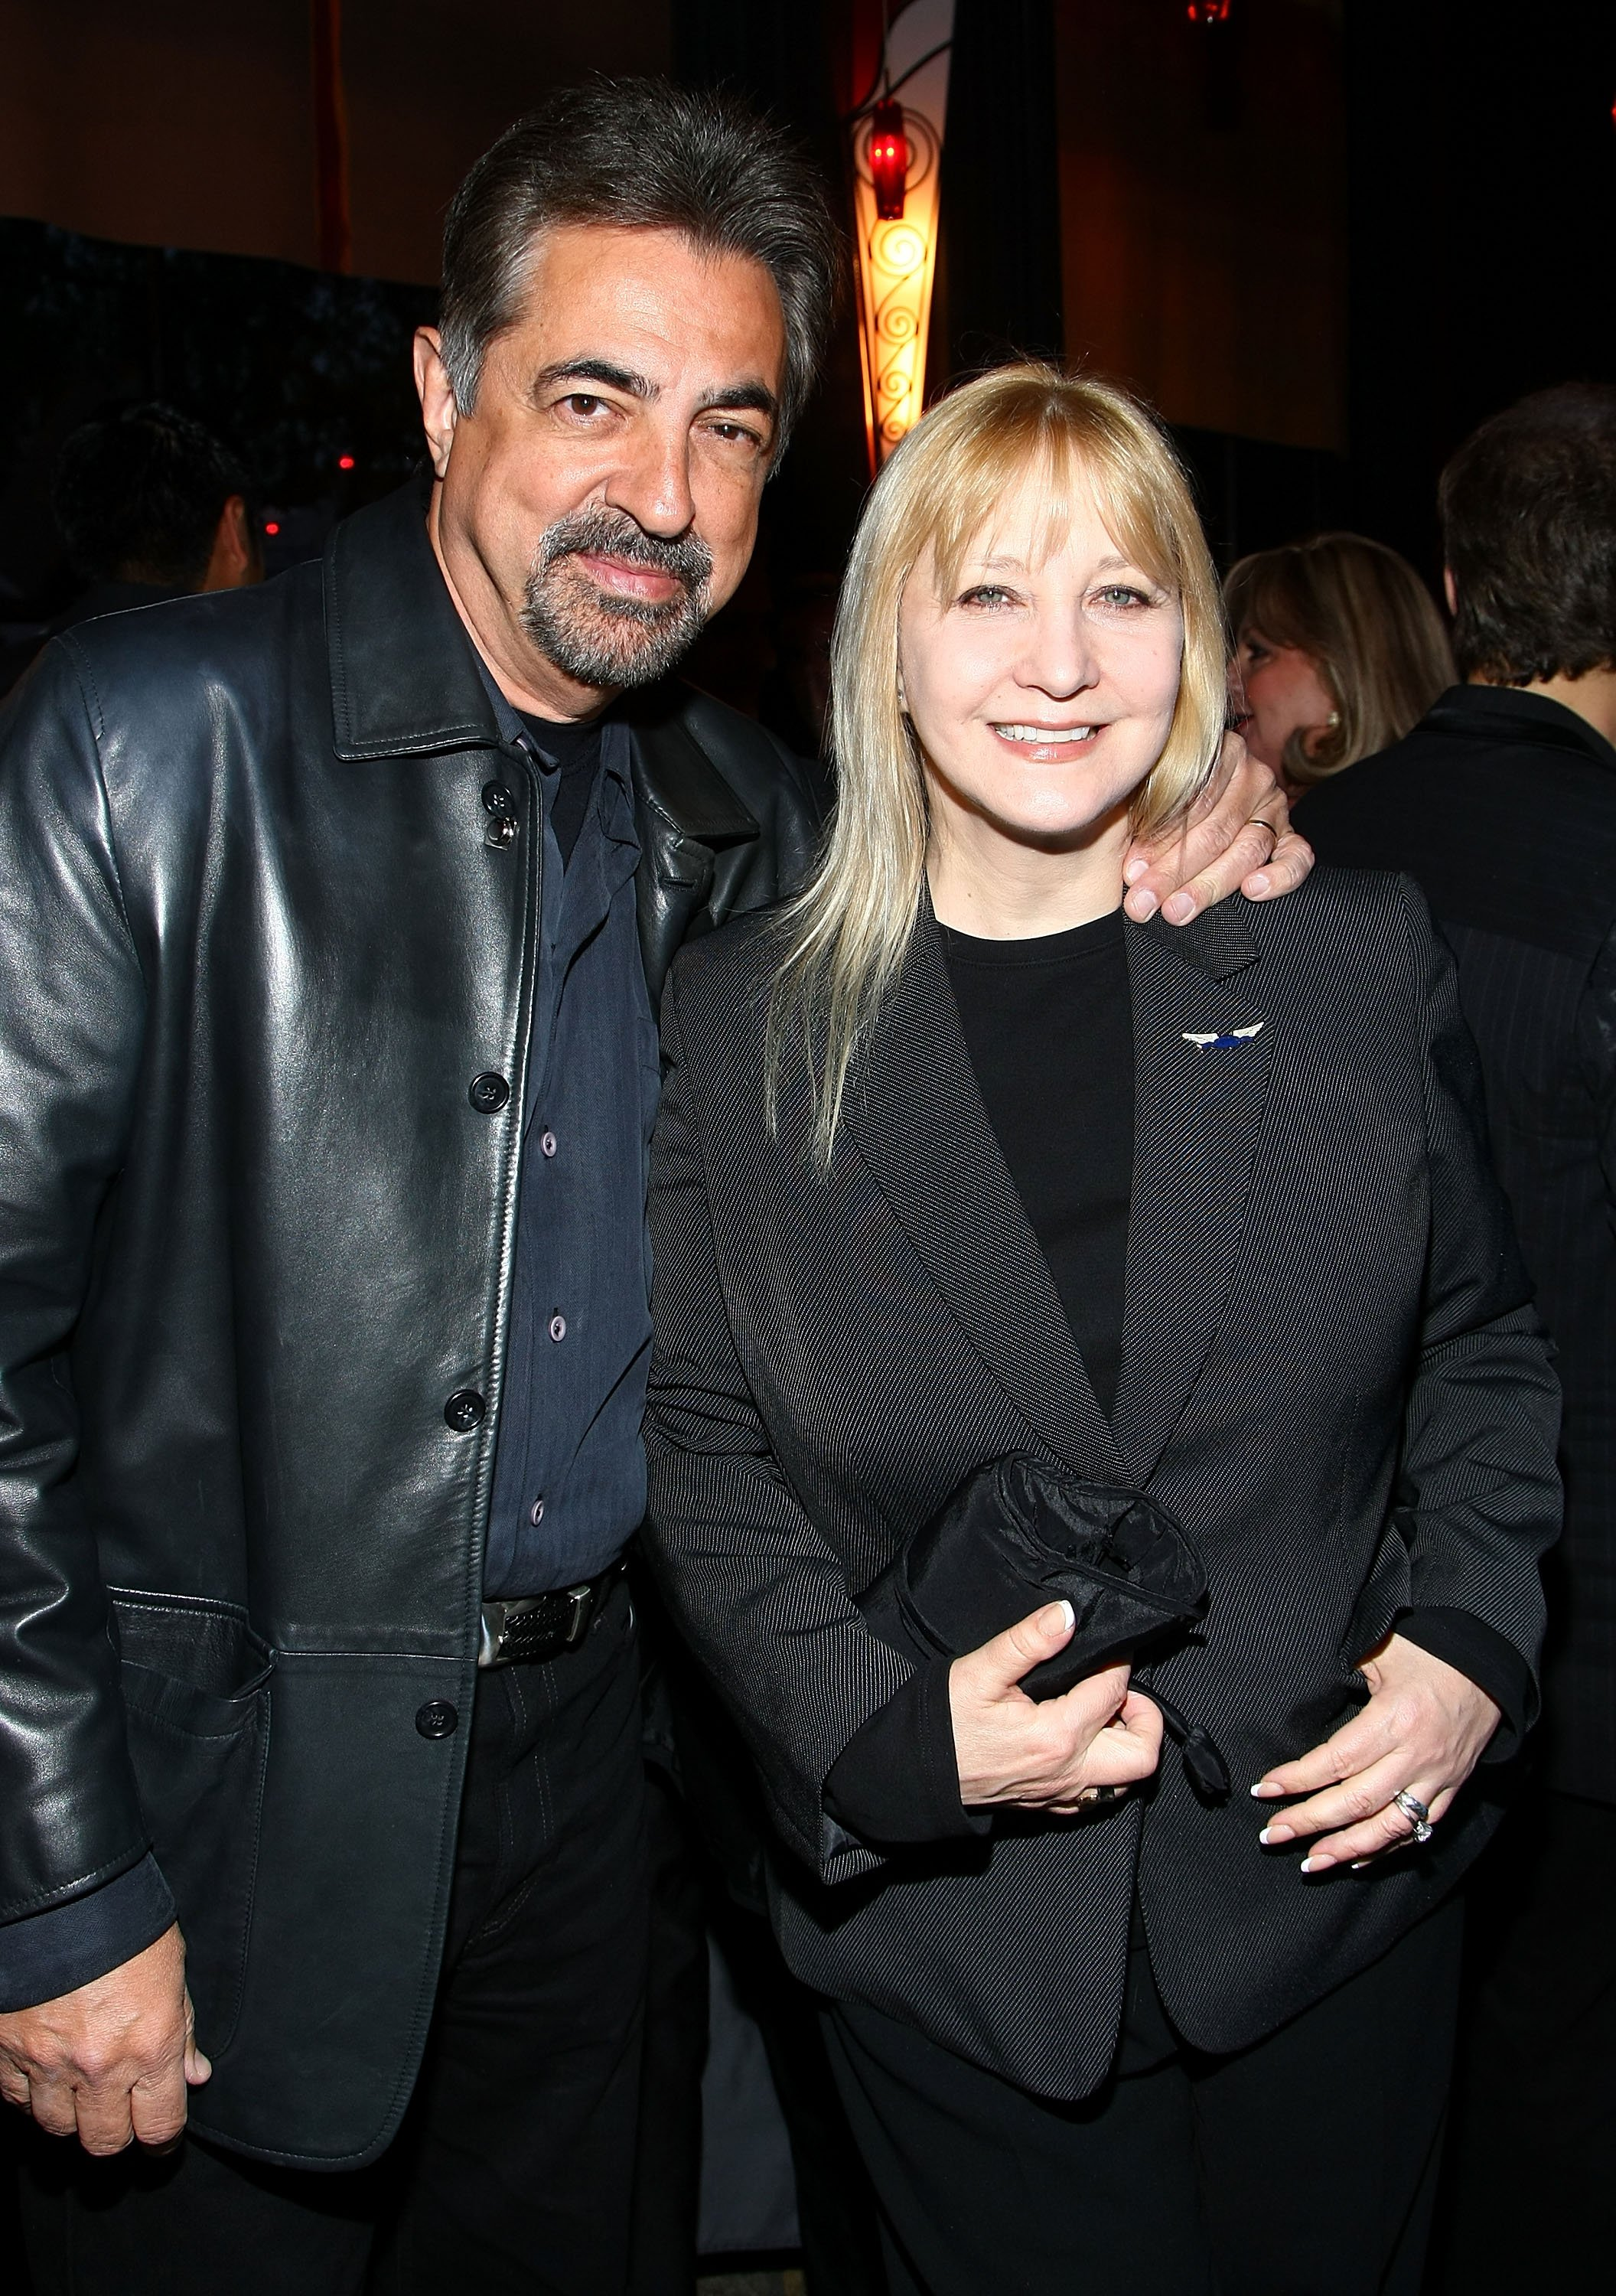 Joe Mantegna and wife Arlene Vrhel attend The Tonys Go Hollywood event hosted by The American Theatre Wing and tThe Broadway League at La Boheme restaurant on April 3, 2008, in West Hollywood, California. | Source: Getty Images.